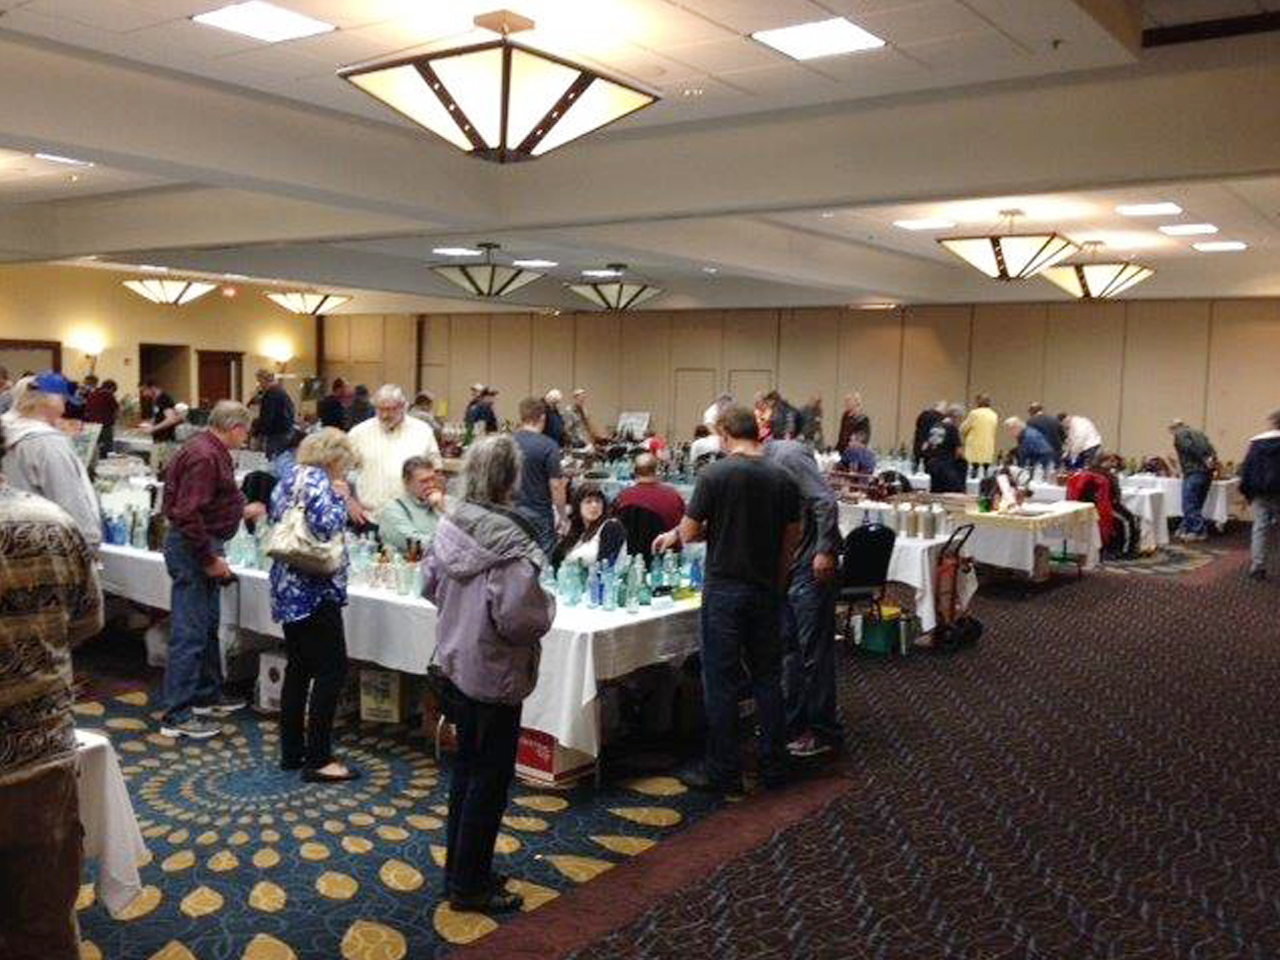 A crowd developed around the sales tables of Jr. Gibson and Bill Vander Veen.